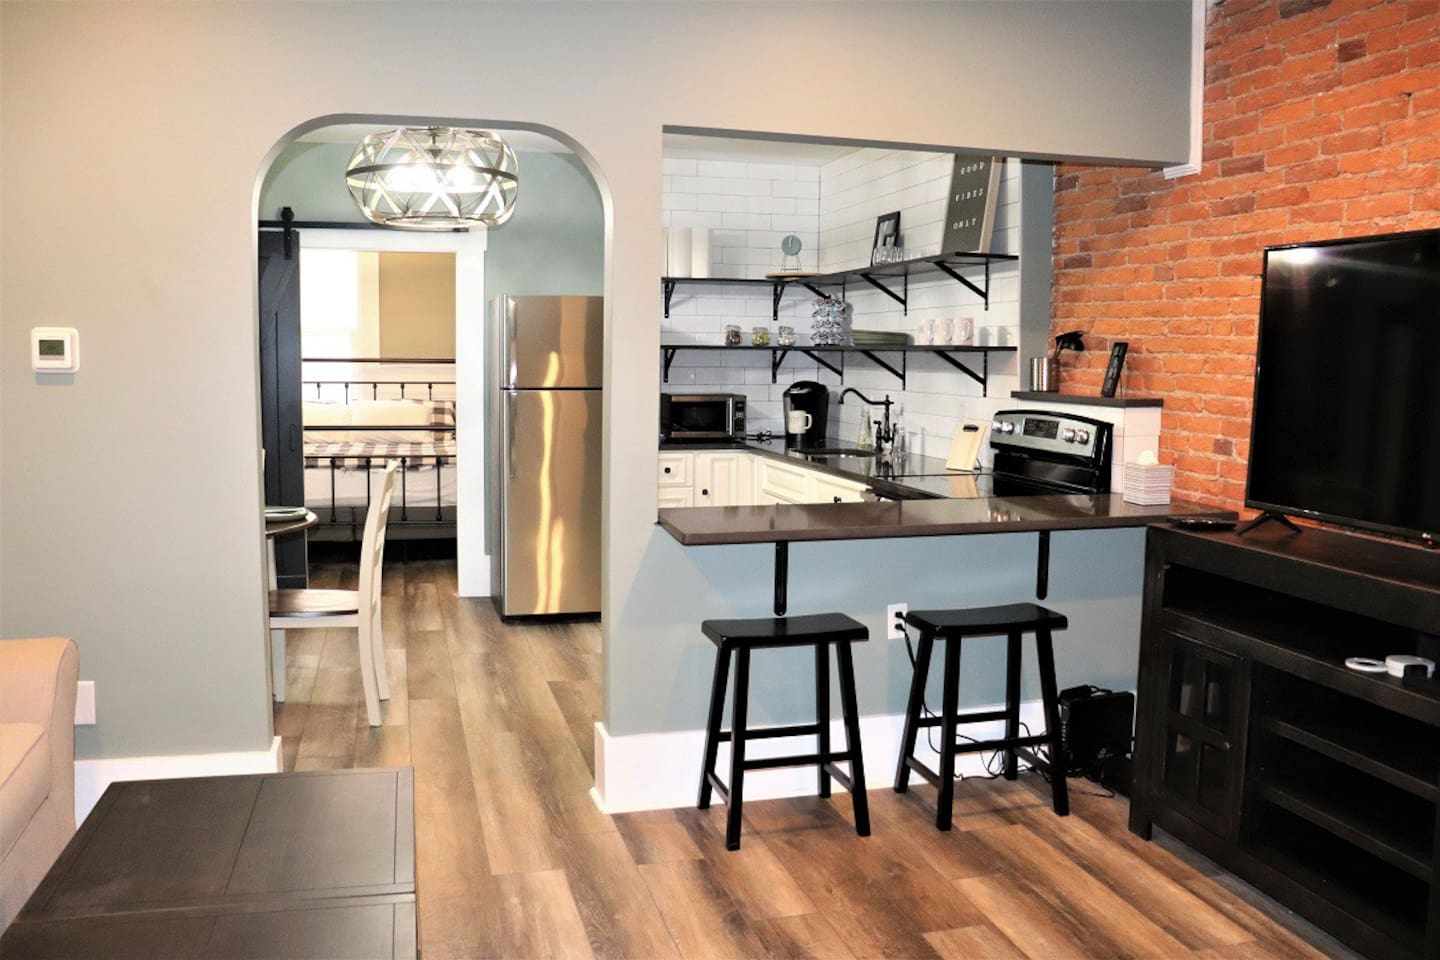 *BRAND NEW* Completely renovated 1st Floor Apt waiting for you! Relax & Stay in our upscale 2 bedroom 1 bath space!